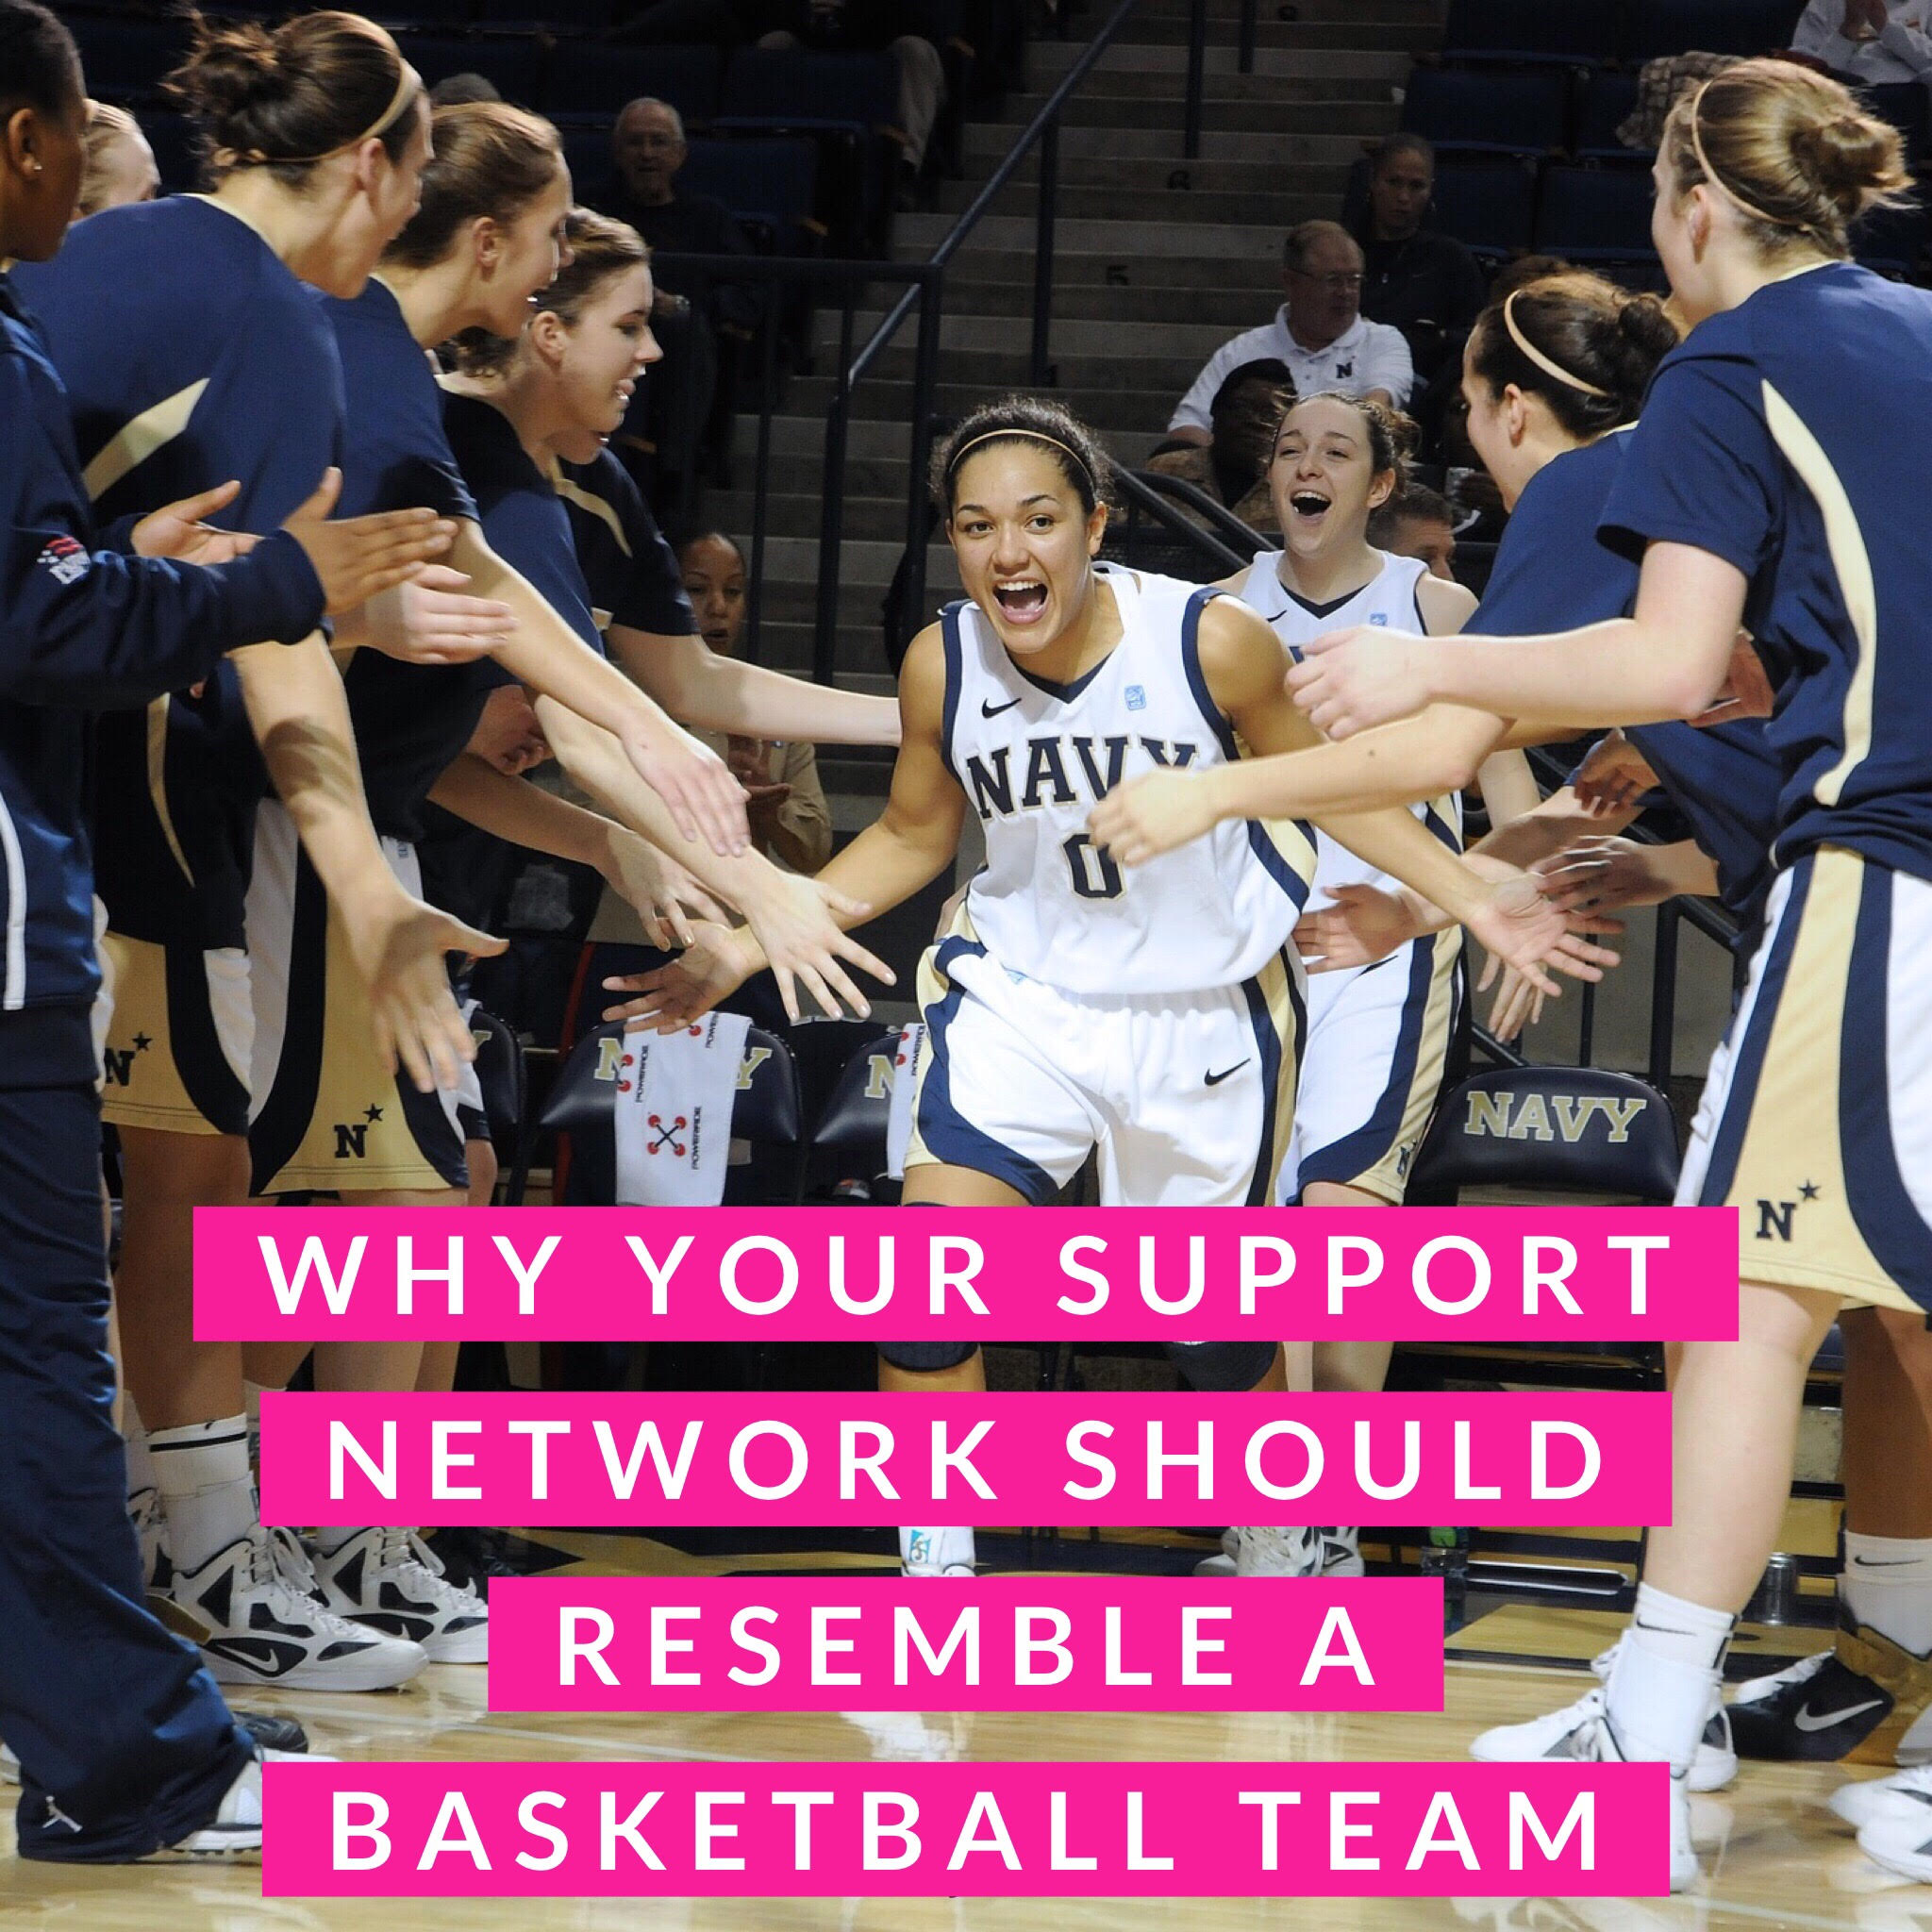 Why your support network should resemble a basketball team!